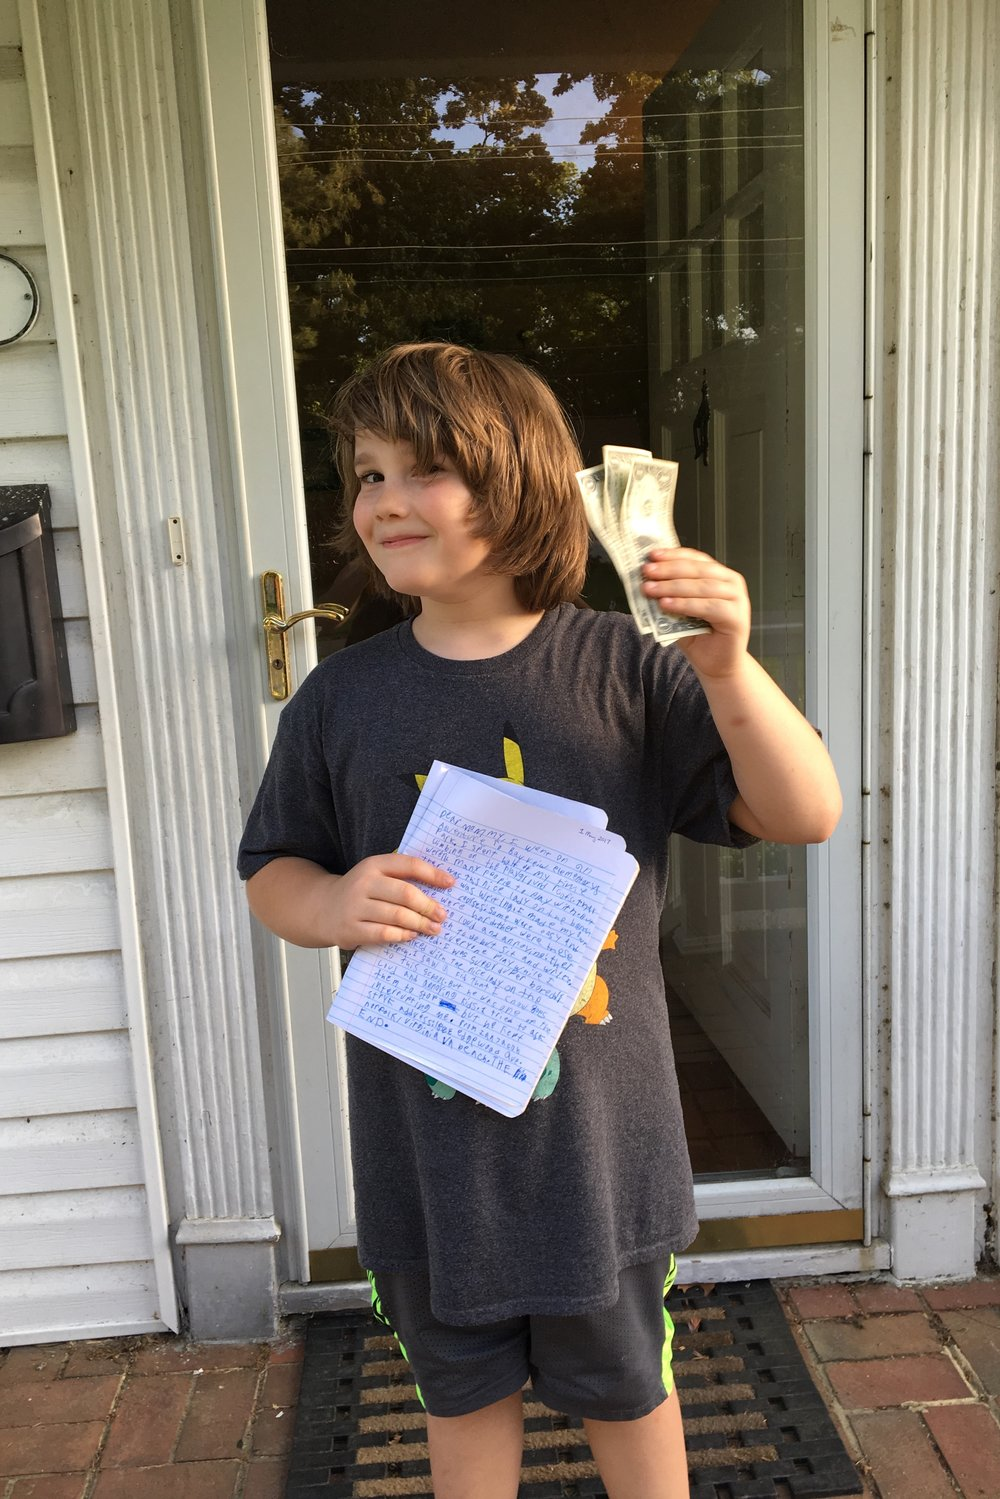 Adventure report filed. $3 in hand! He gave himself an 8/10 score because of his handwriting.